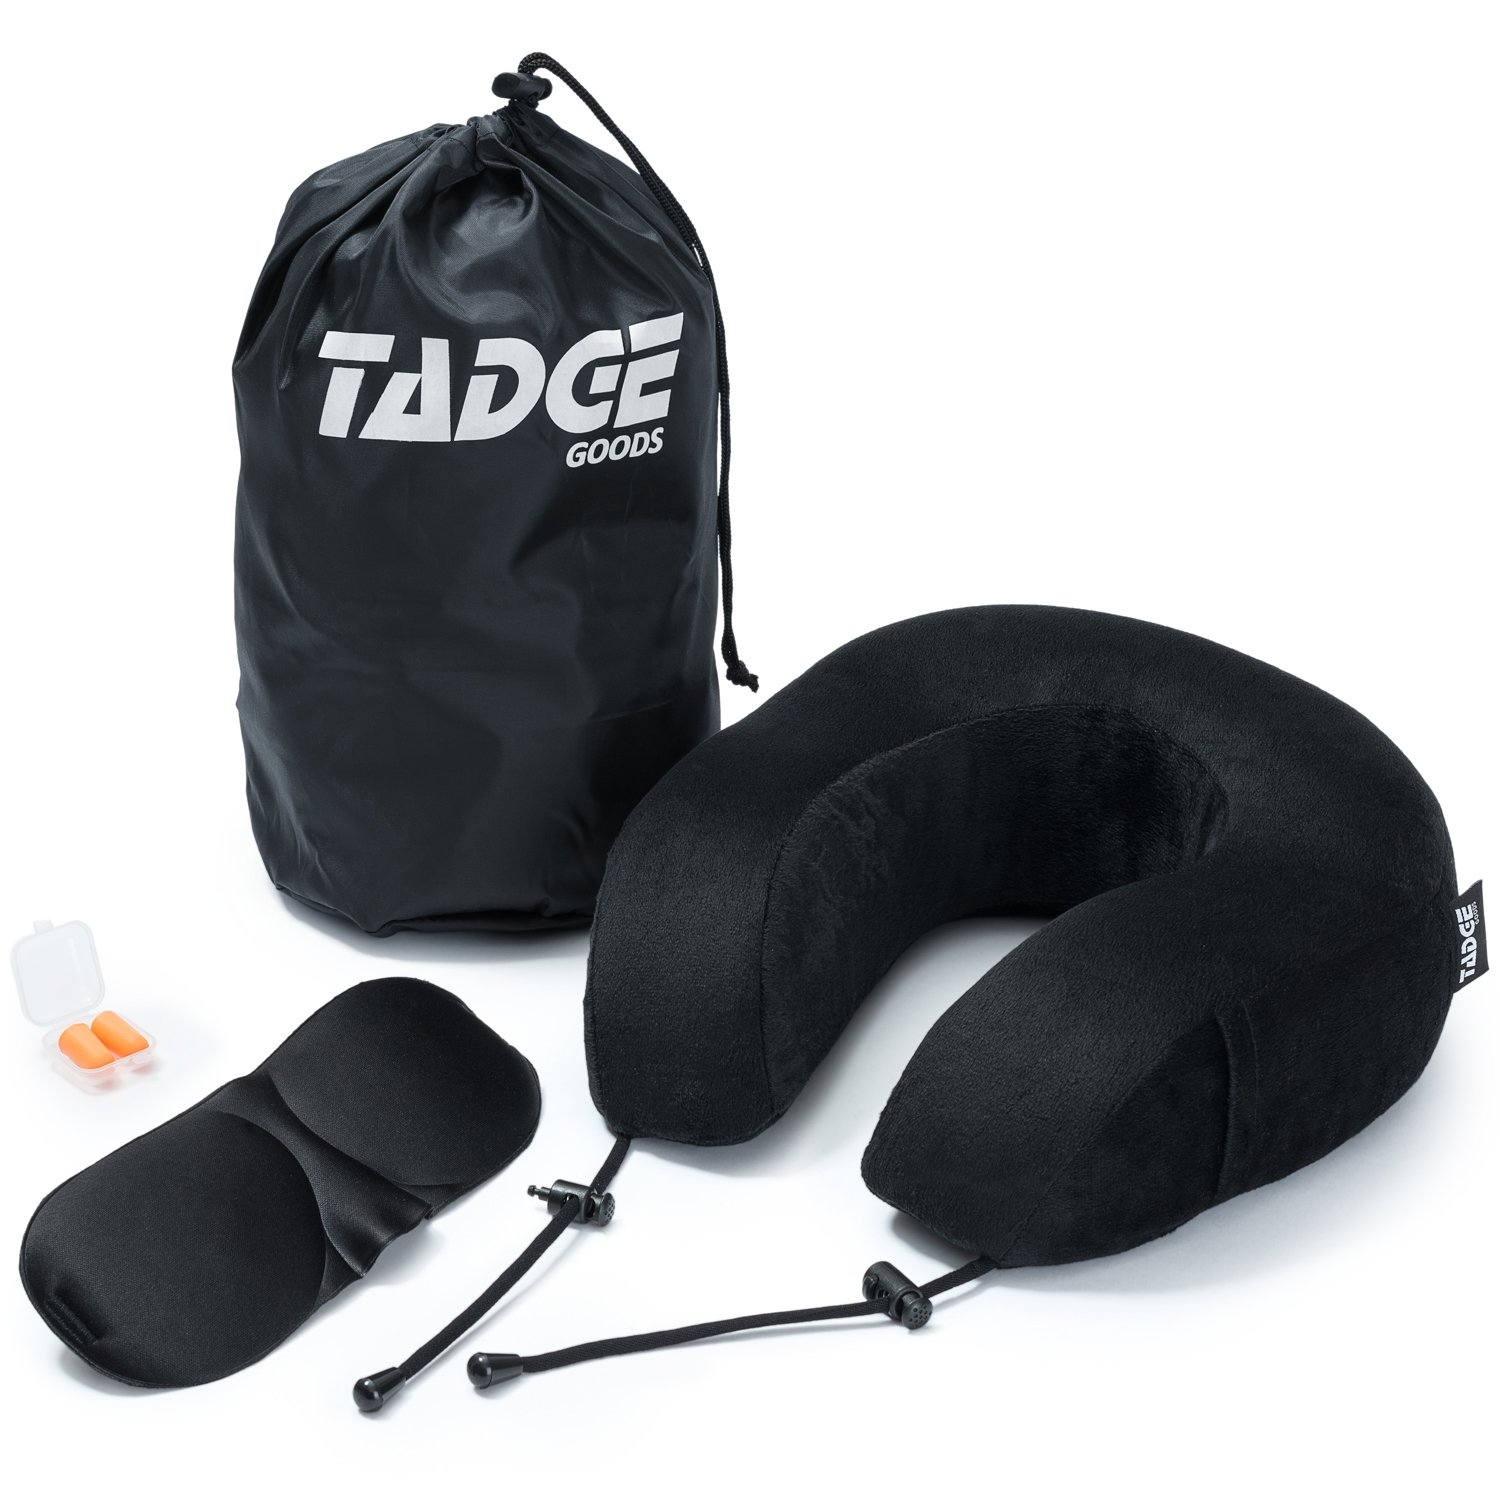 Tadge Goods Neck Travel Airplane Pillow & Accessories – 100% Pure Memory Foam – Sleeping Eye Mask, Ear Plugs, Travel Bag Included – 10 Colors To Choose From